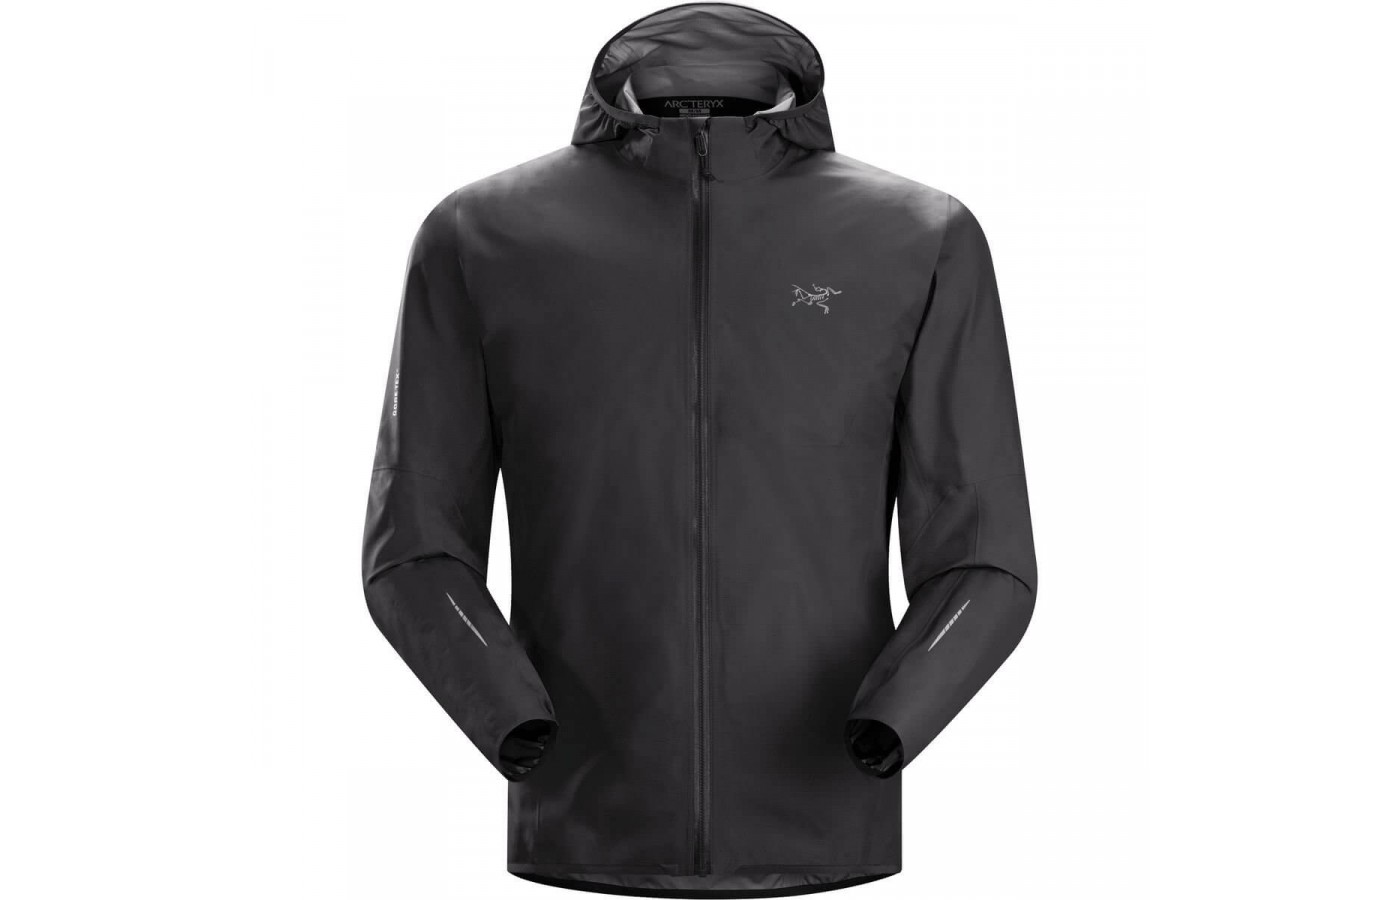 A black version of the Arc'teryx Norvan Jacket